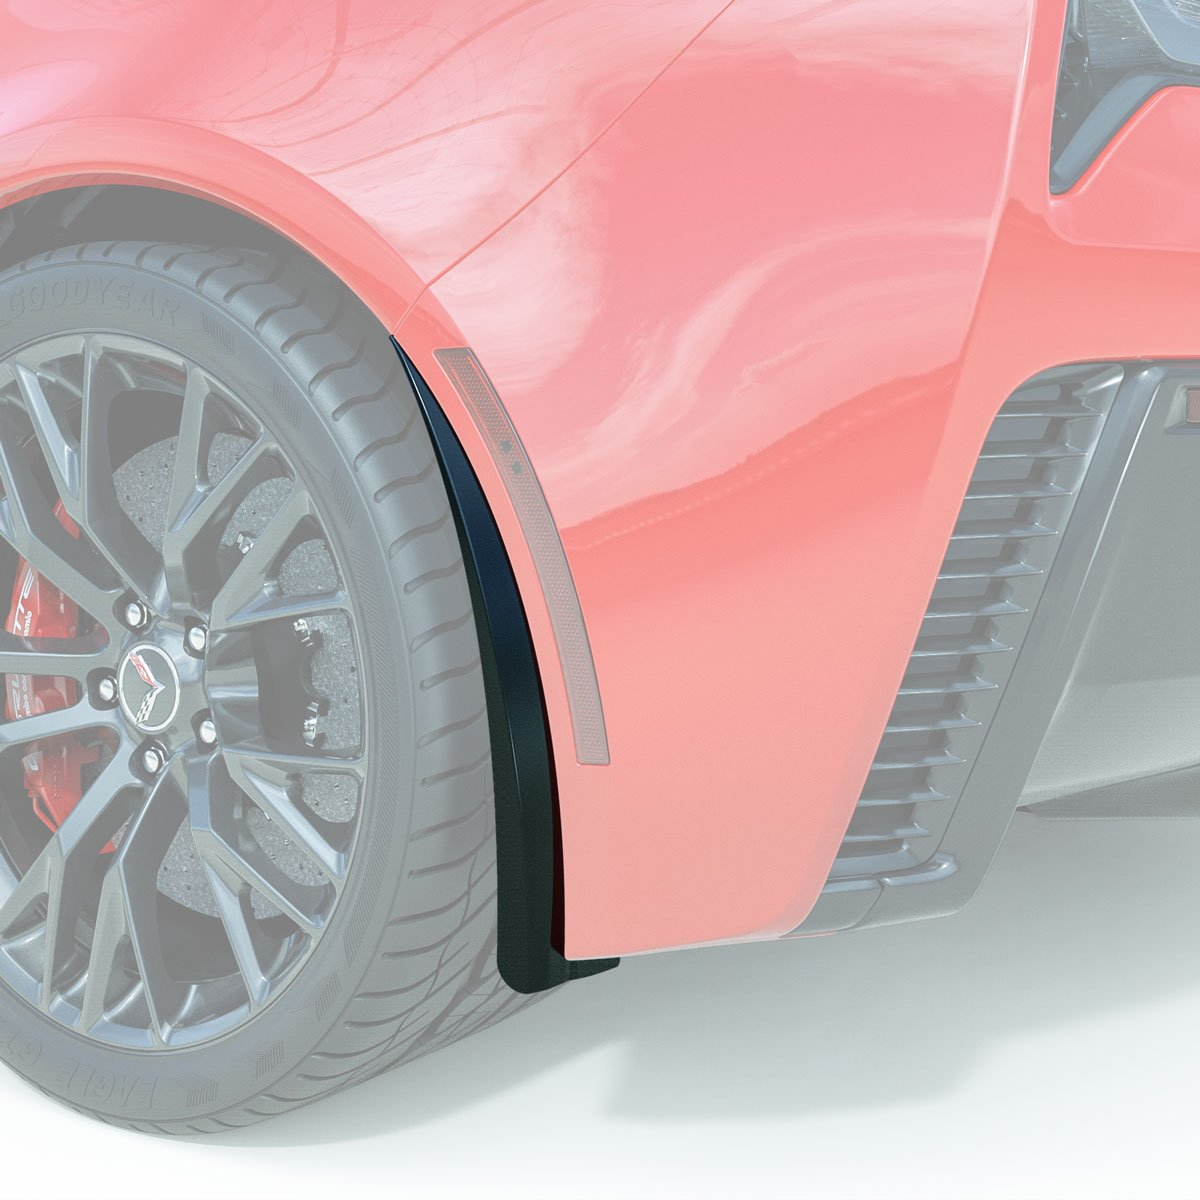 C7 Corvette ACS XL Rear Wheel Rock / Splash Guards, Pair, Painted in Carbon Flash Metallatic